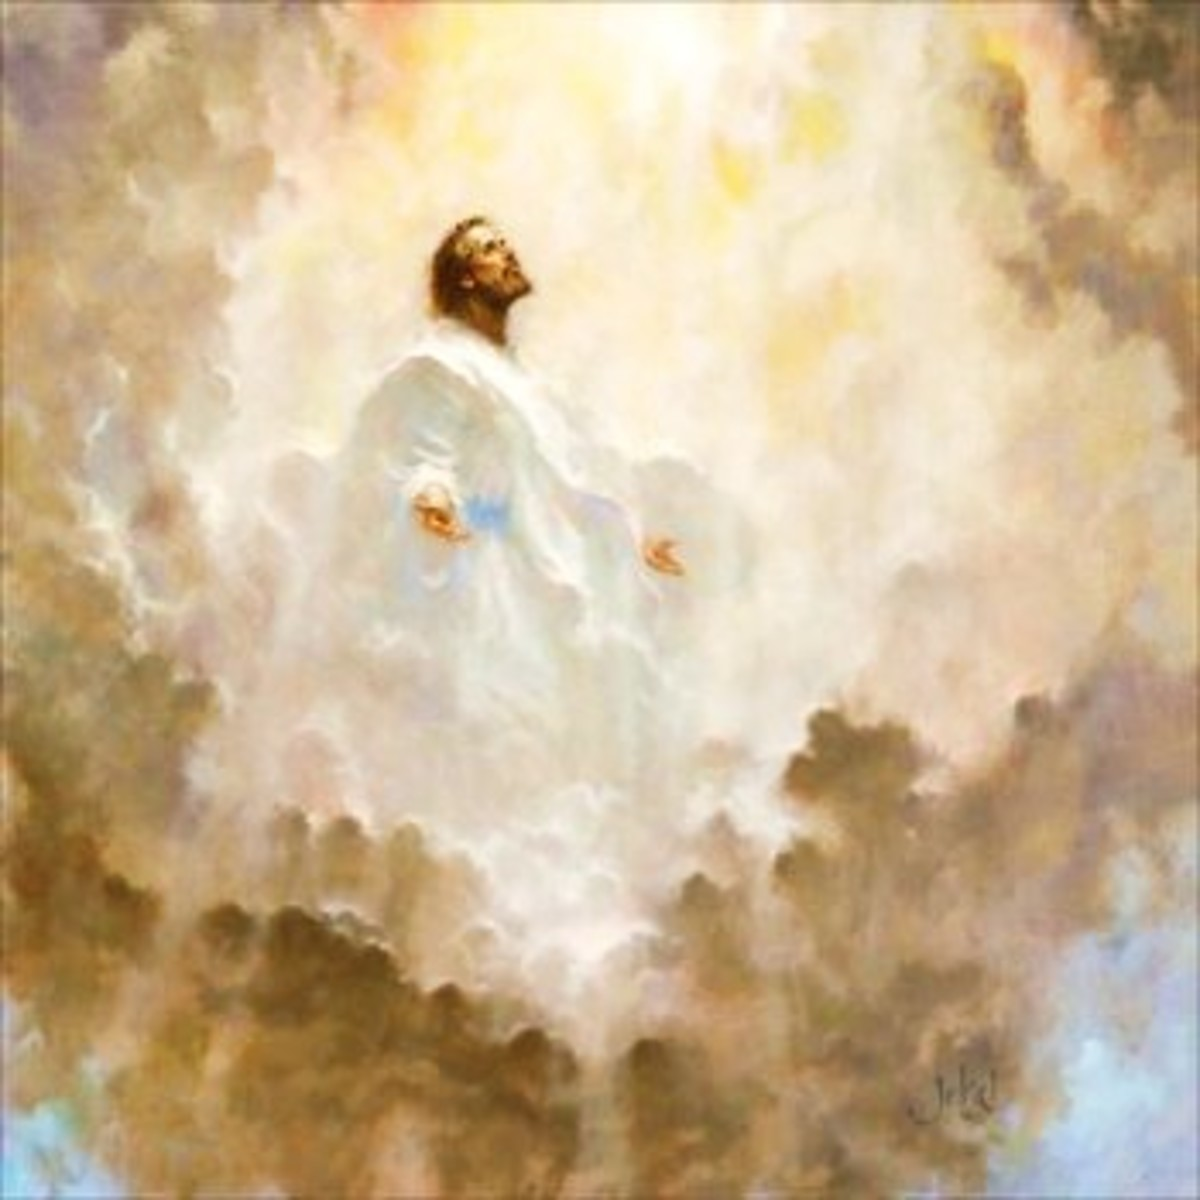 The Unseen  Believing in Christ Without Seeing Christ and Christ Sighted in Clouds and Captured in Photos